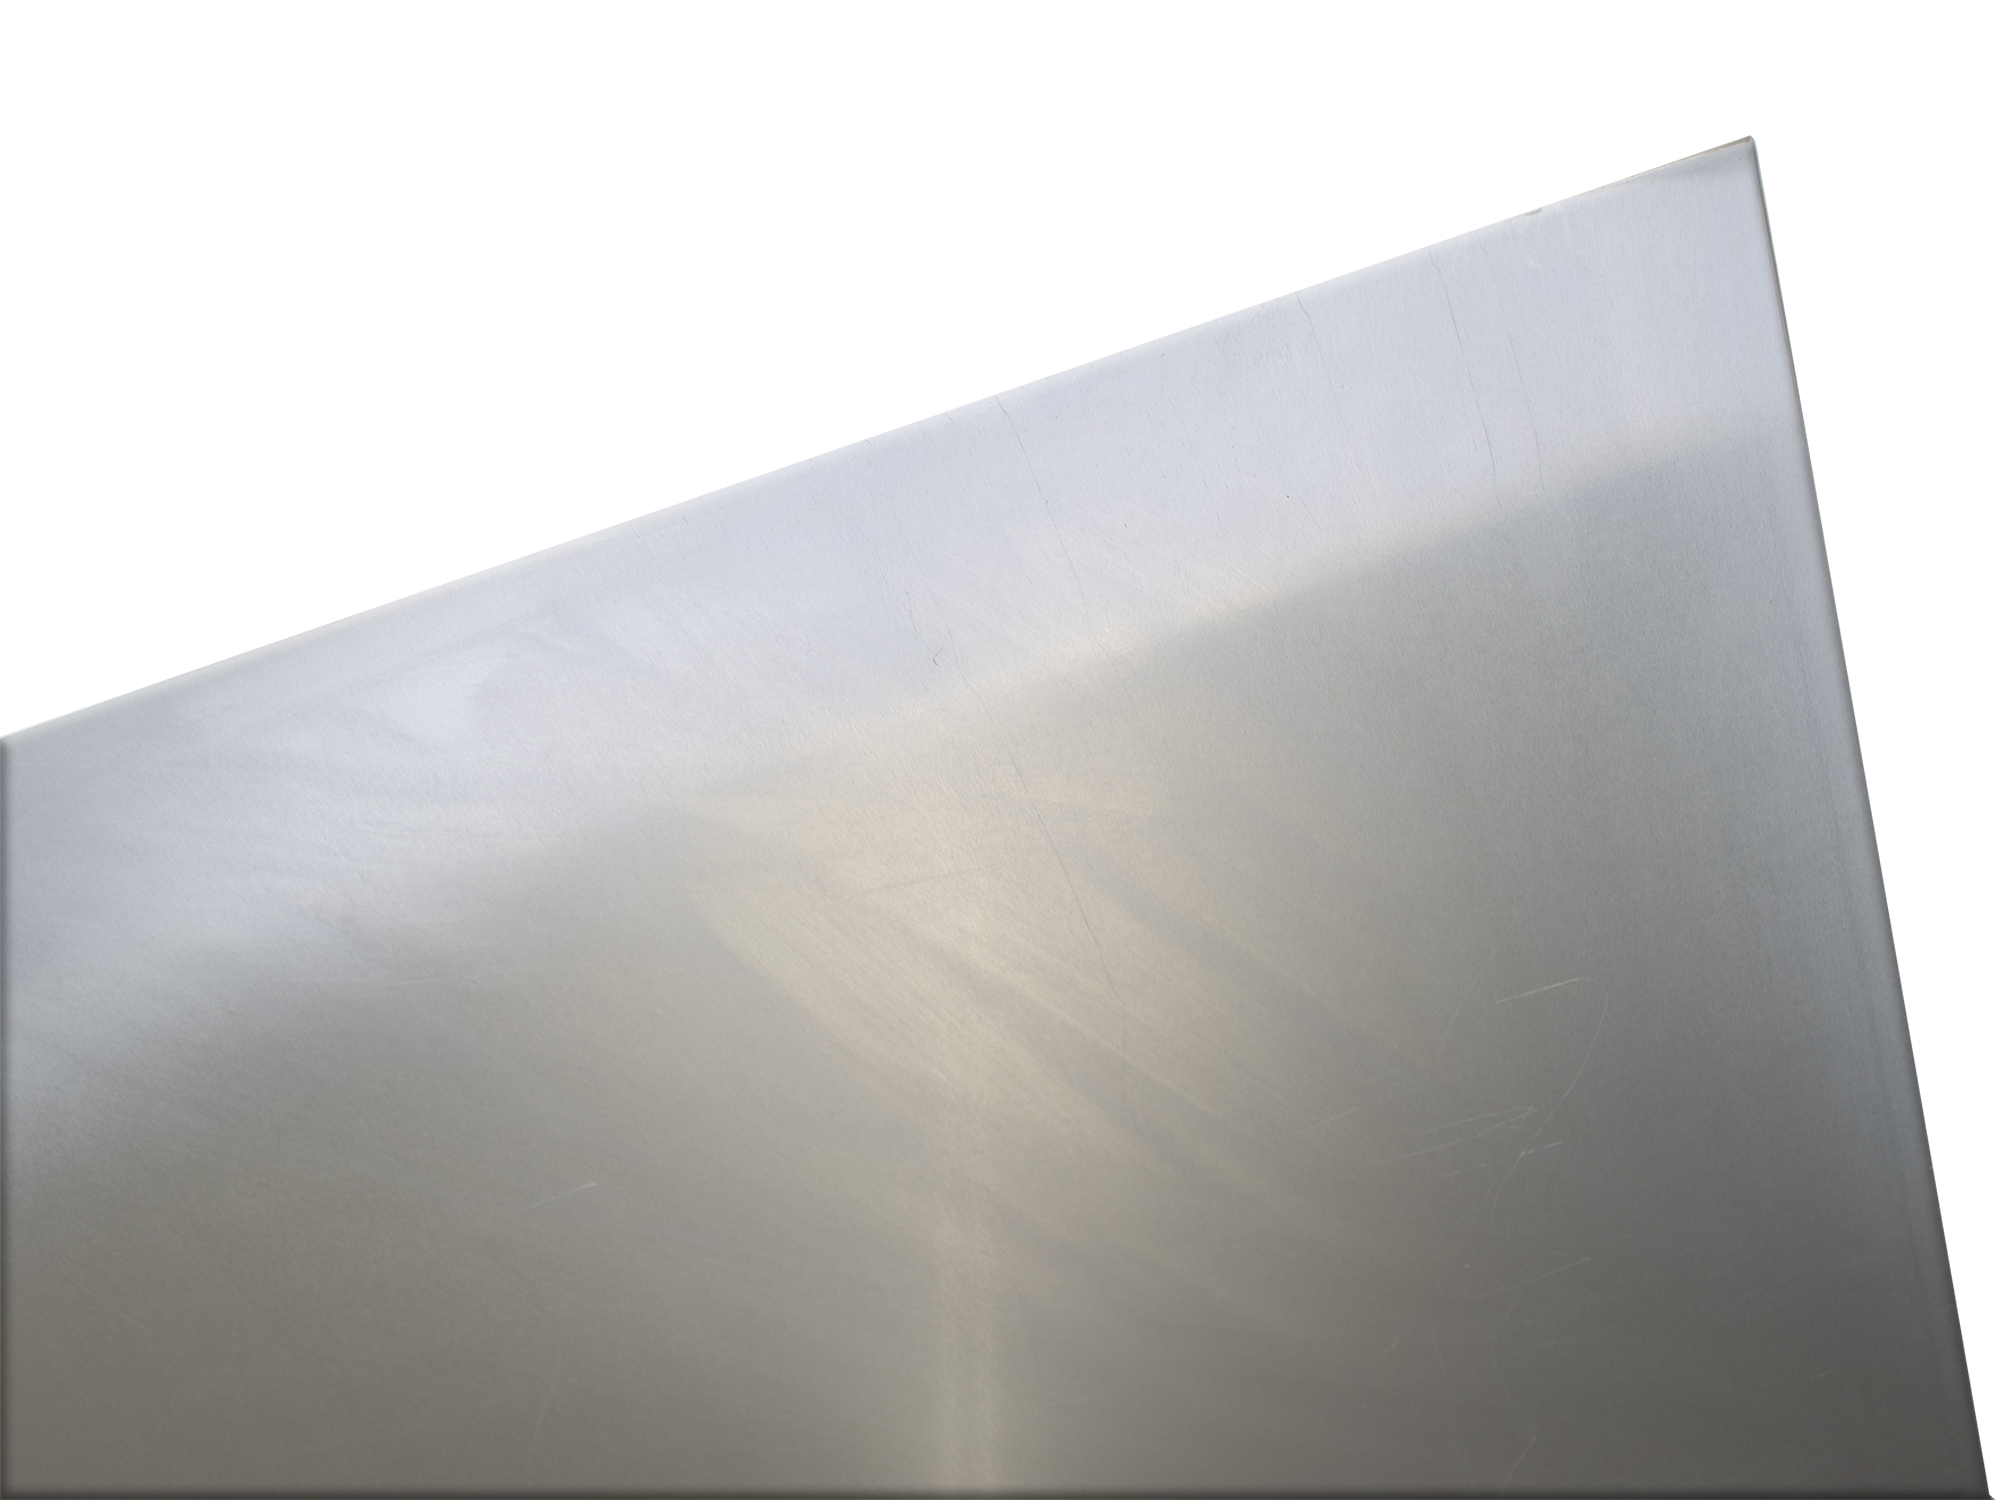 plaat aluminium 1000 x 500 x 1,0mm